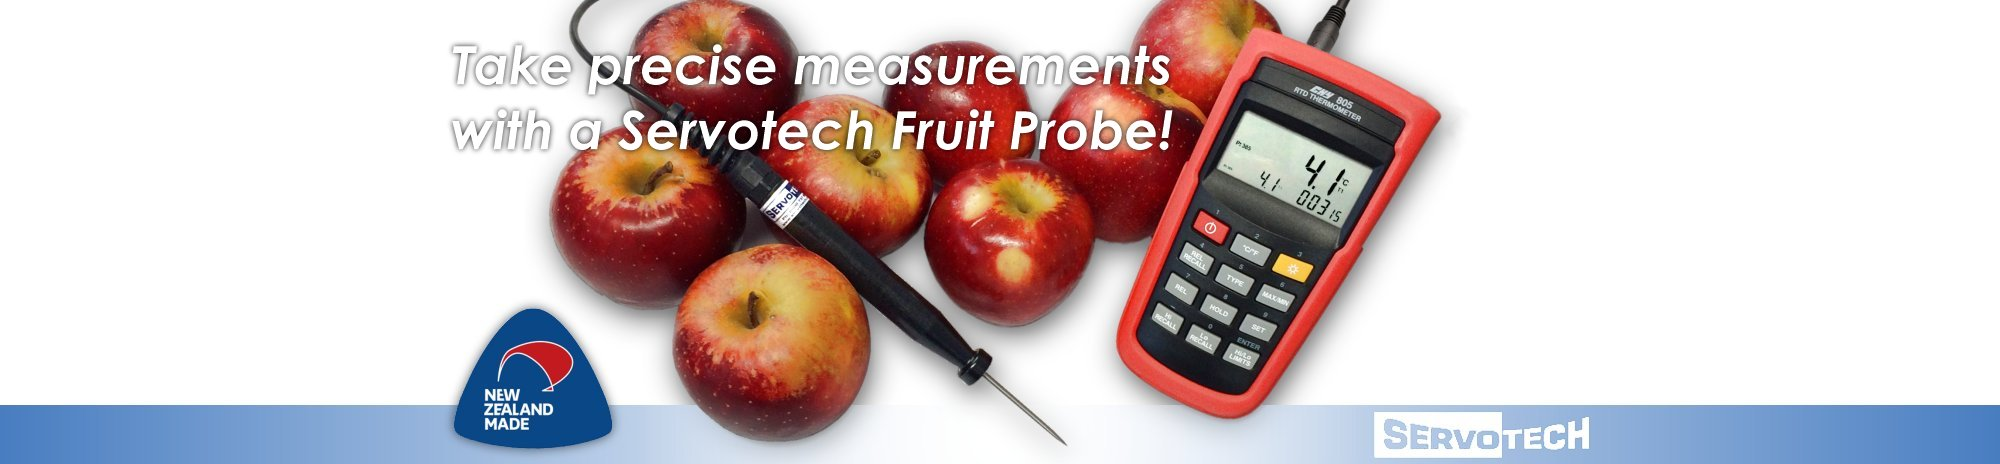 Servotech Fruit Probes - precise temperature measurement of stored or fresh fruit